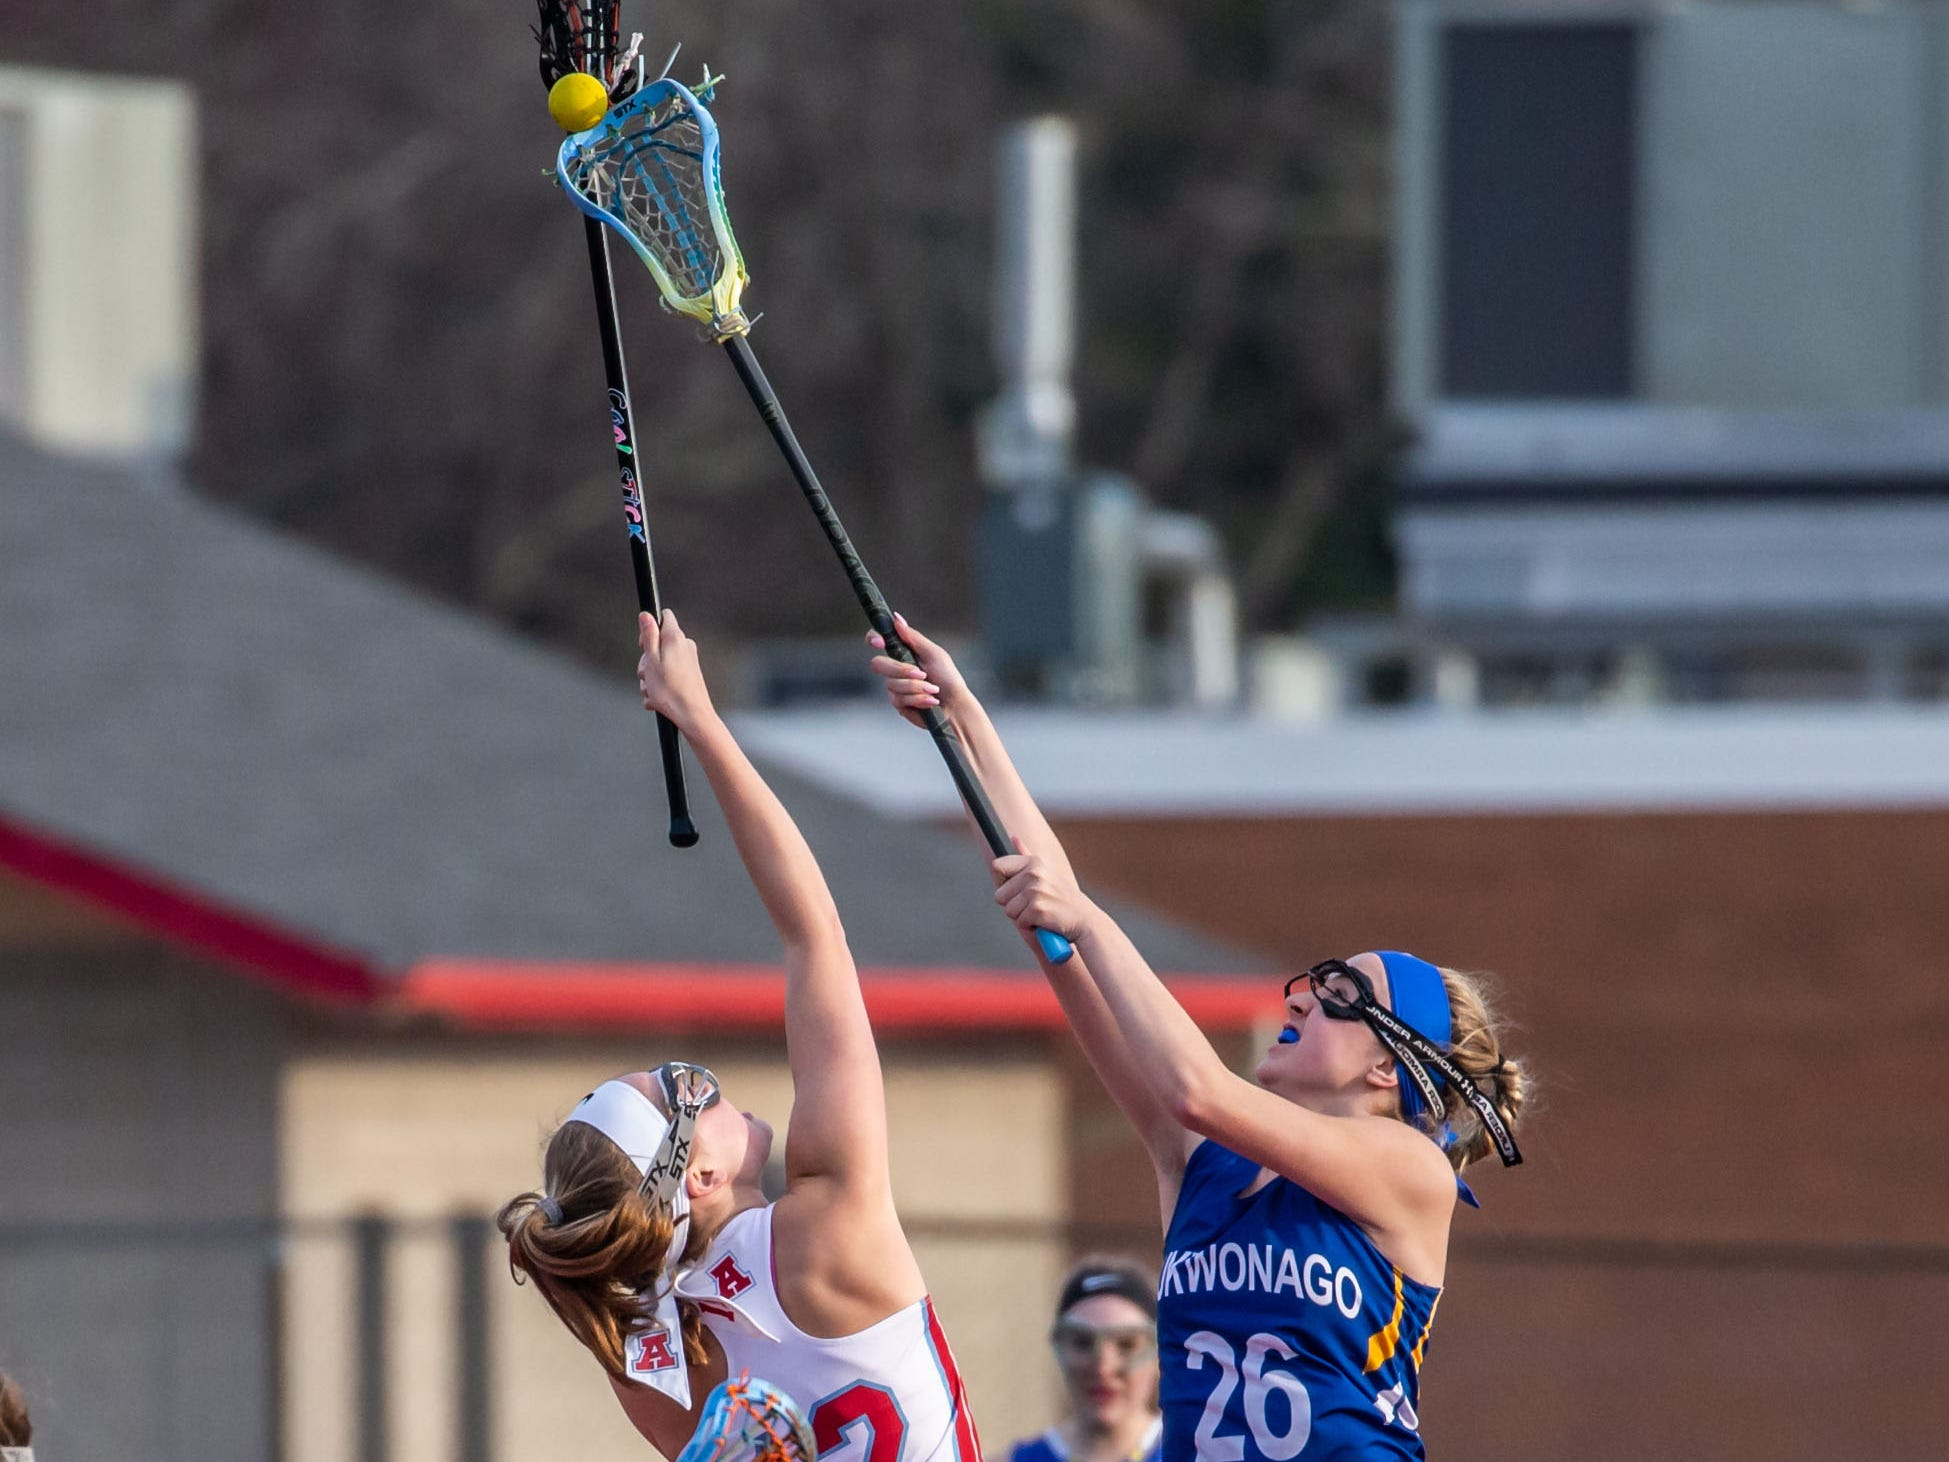 Arrowhead's Coryn Tormala (12) faces off with Mukwonago's Paige St. Clair (26) during the game at Arrowhead on Tuesday, April 16, 2019.